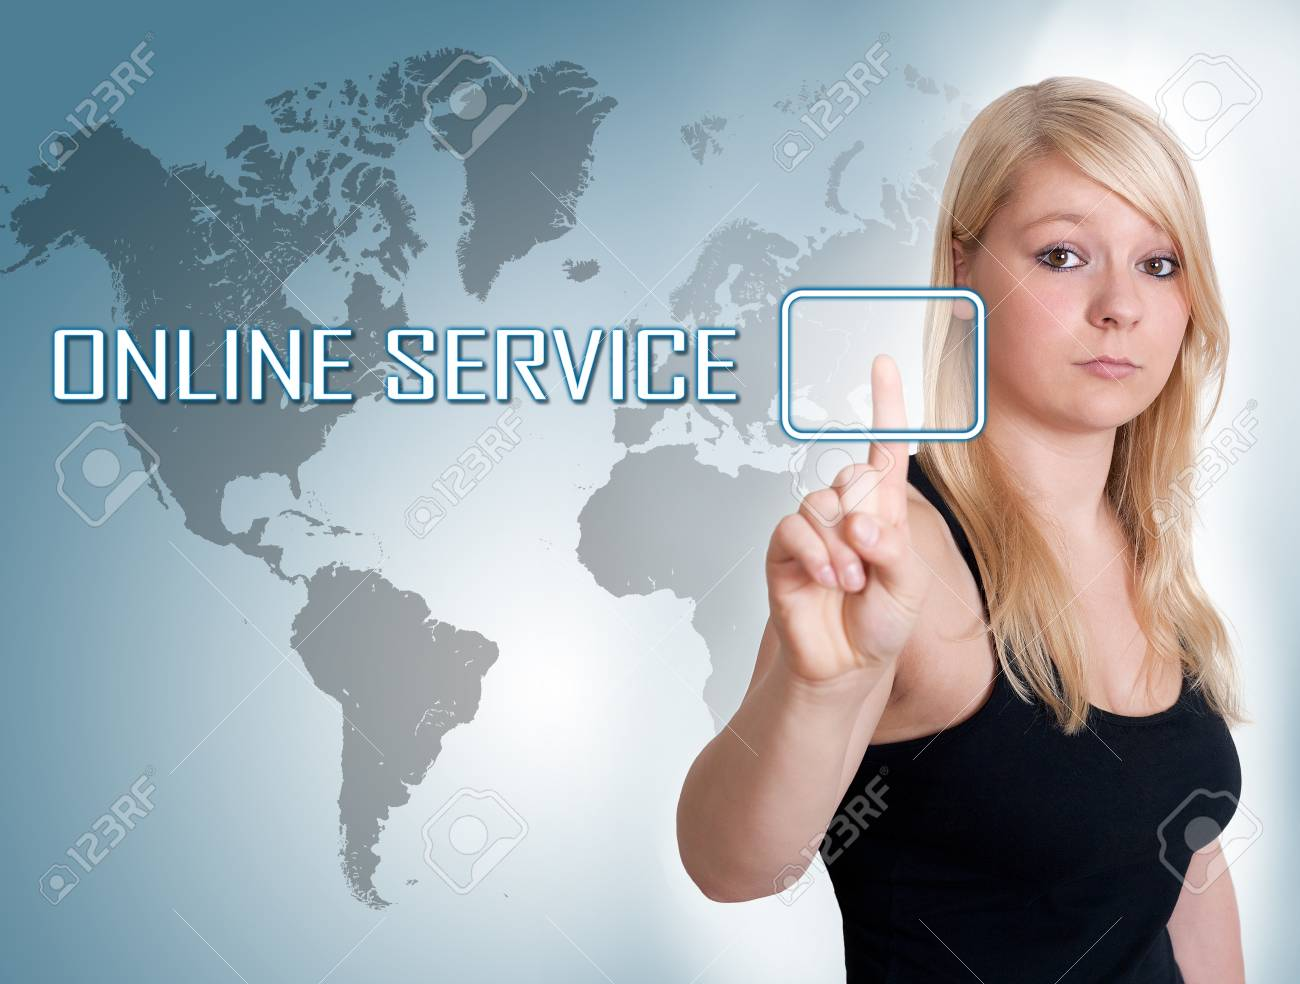 Young woman press digital Online Service button on interface in front of her Stock Photo - 30349726